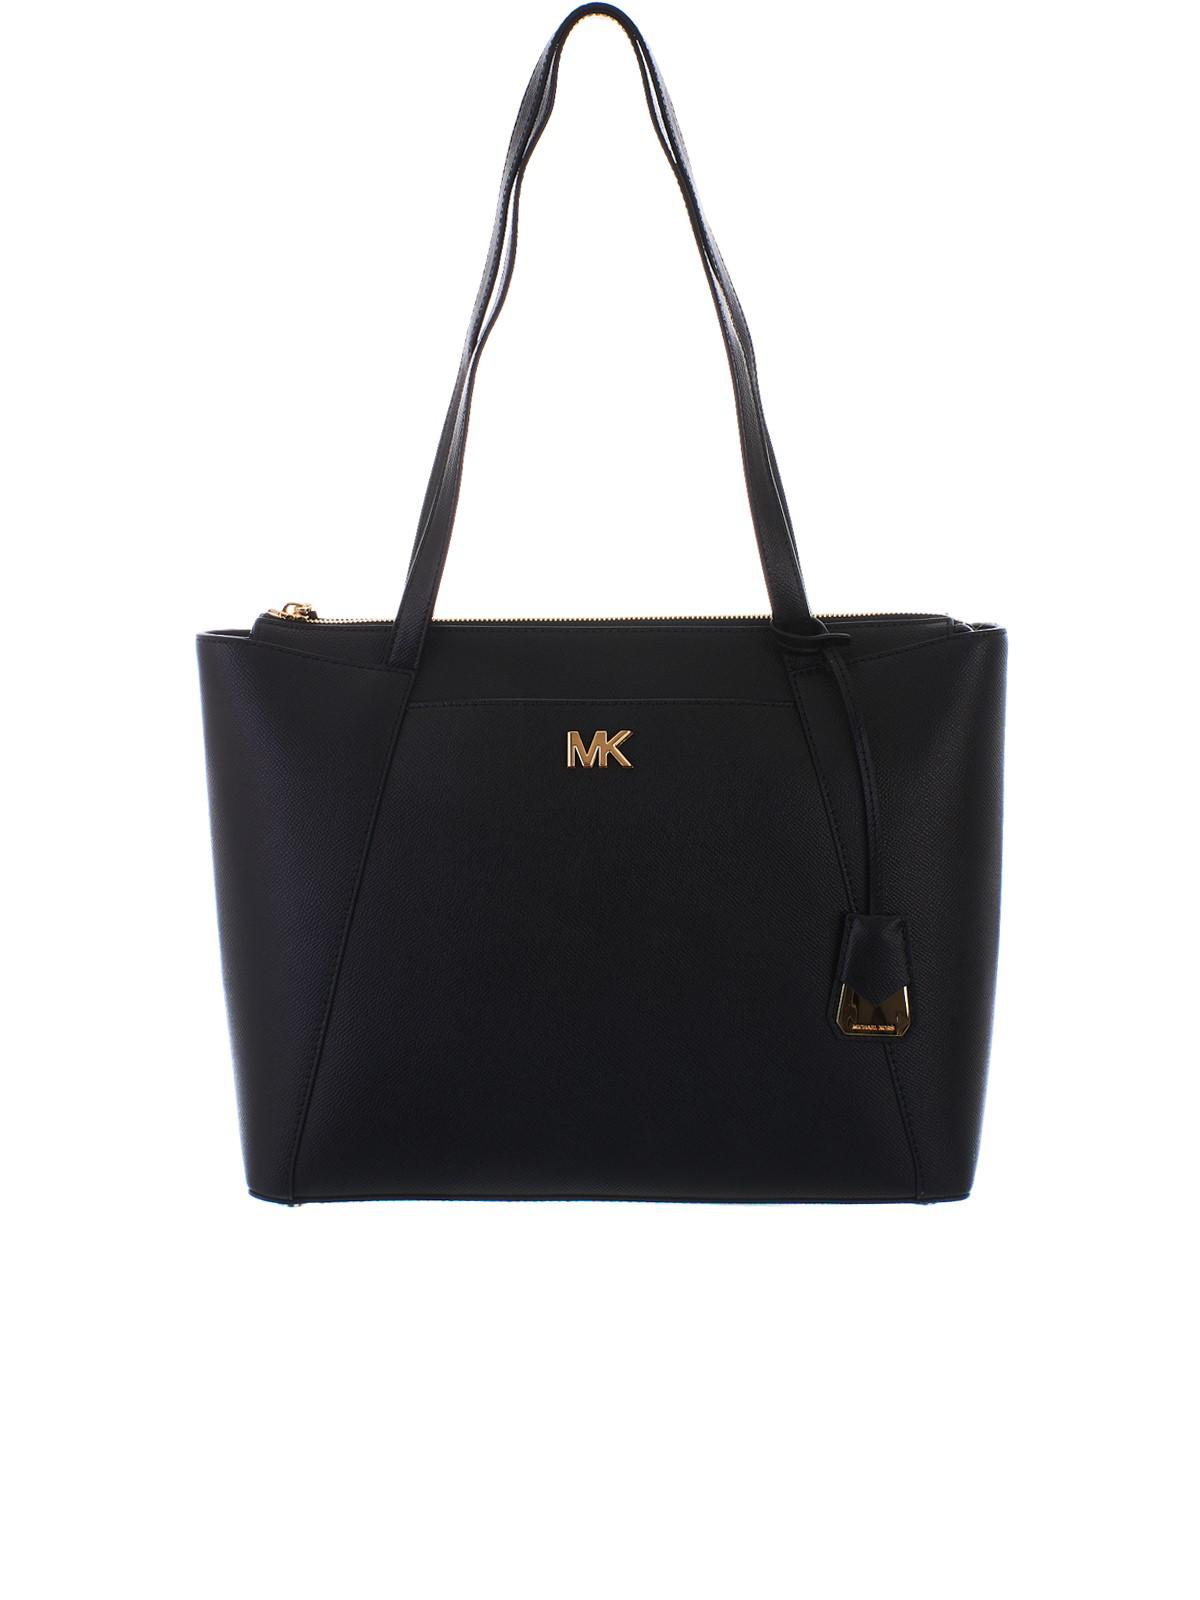 c4e9e0c1858a Lyst - Michael Kors Black Medium Maddie Bag in Black